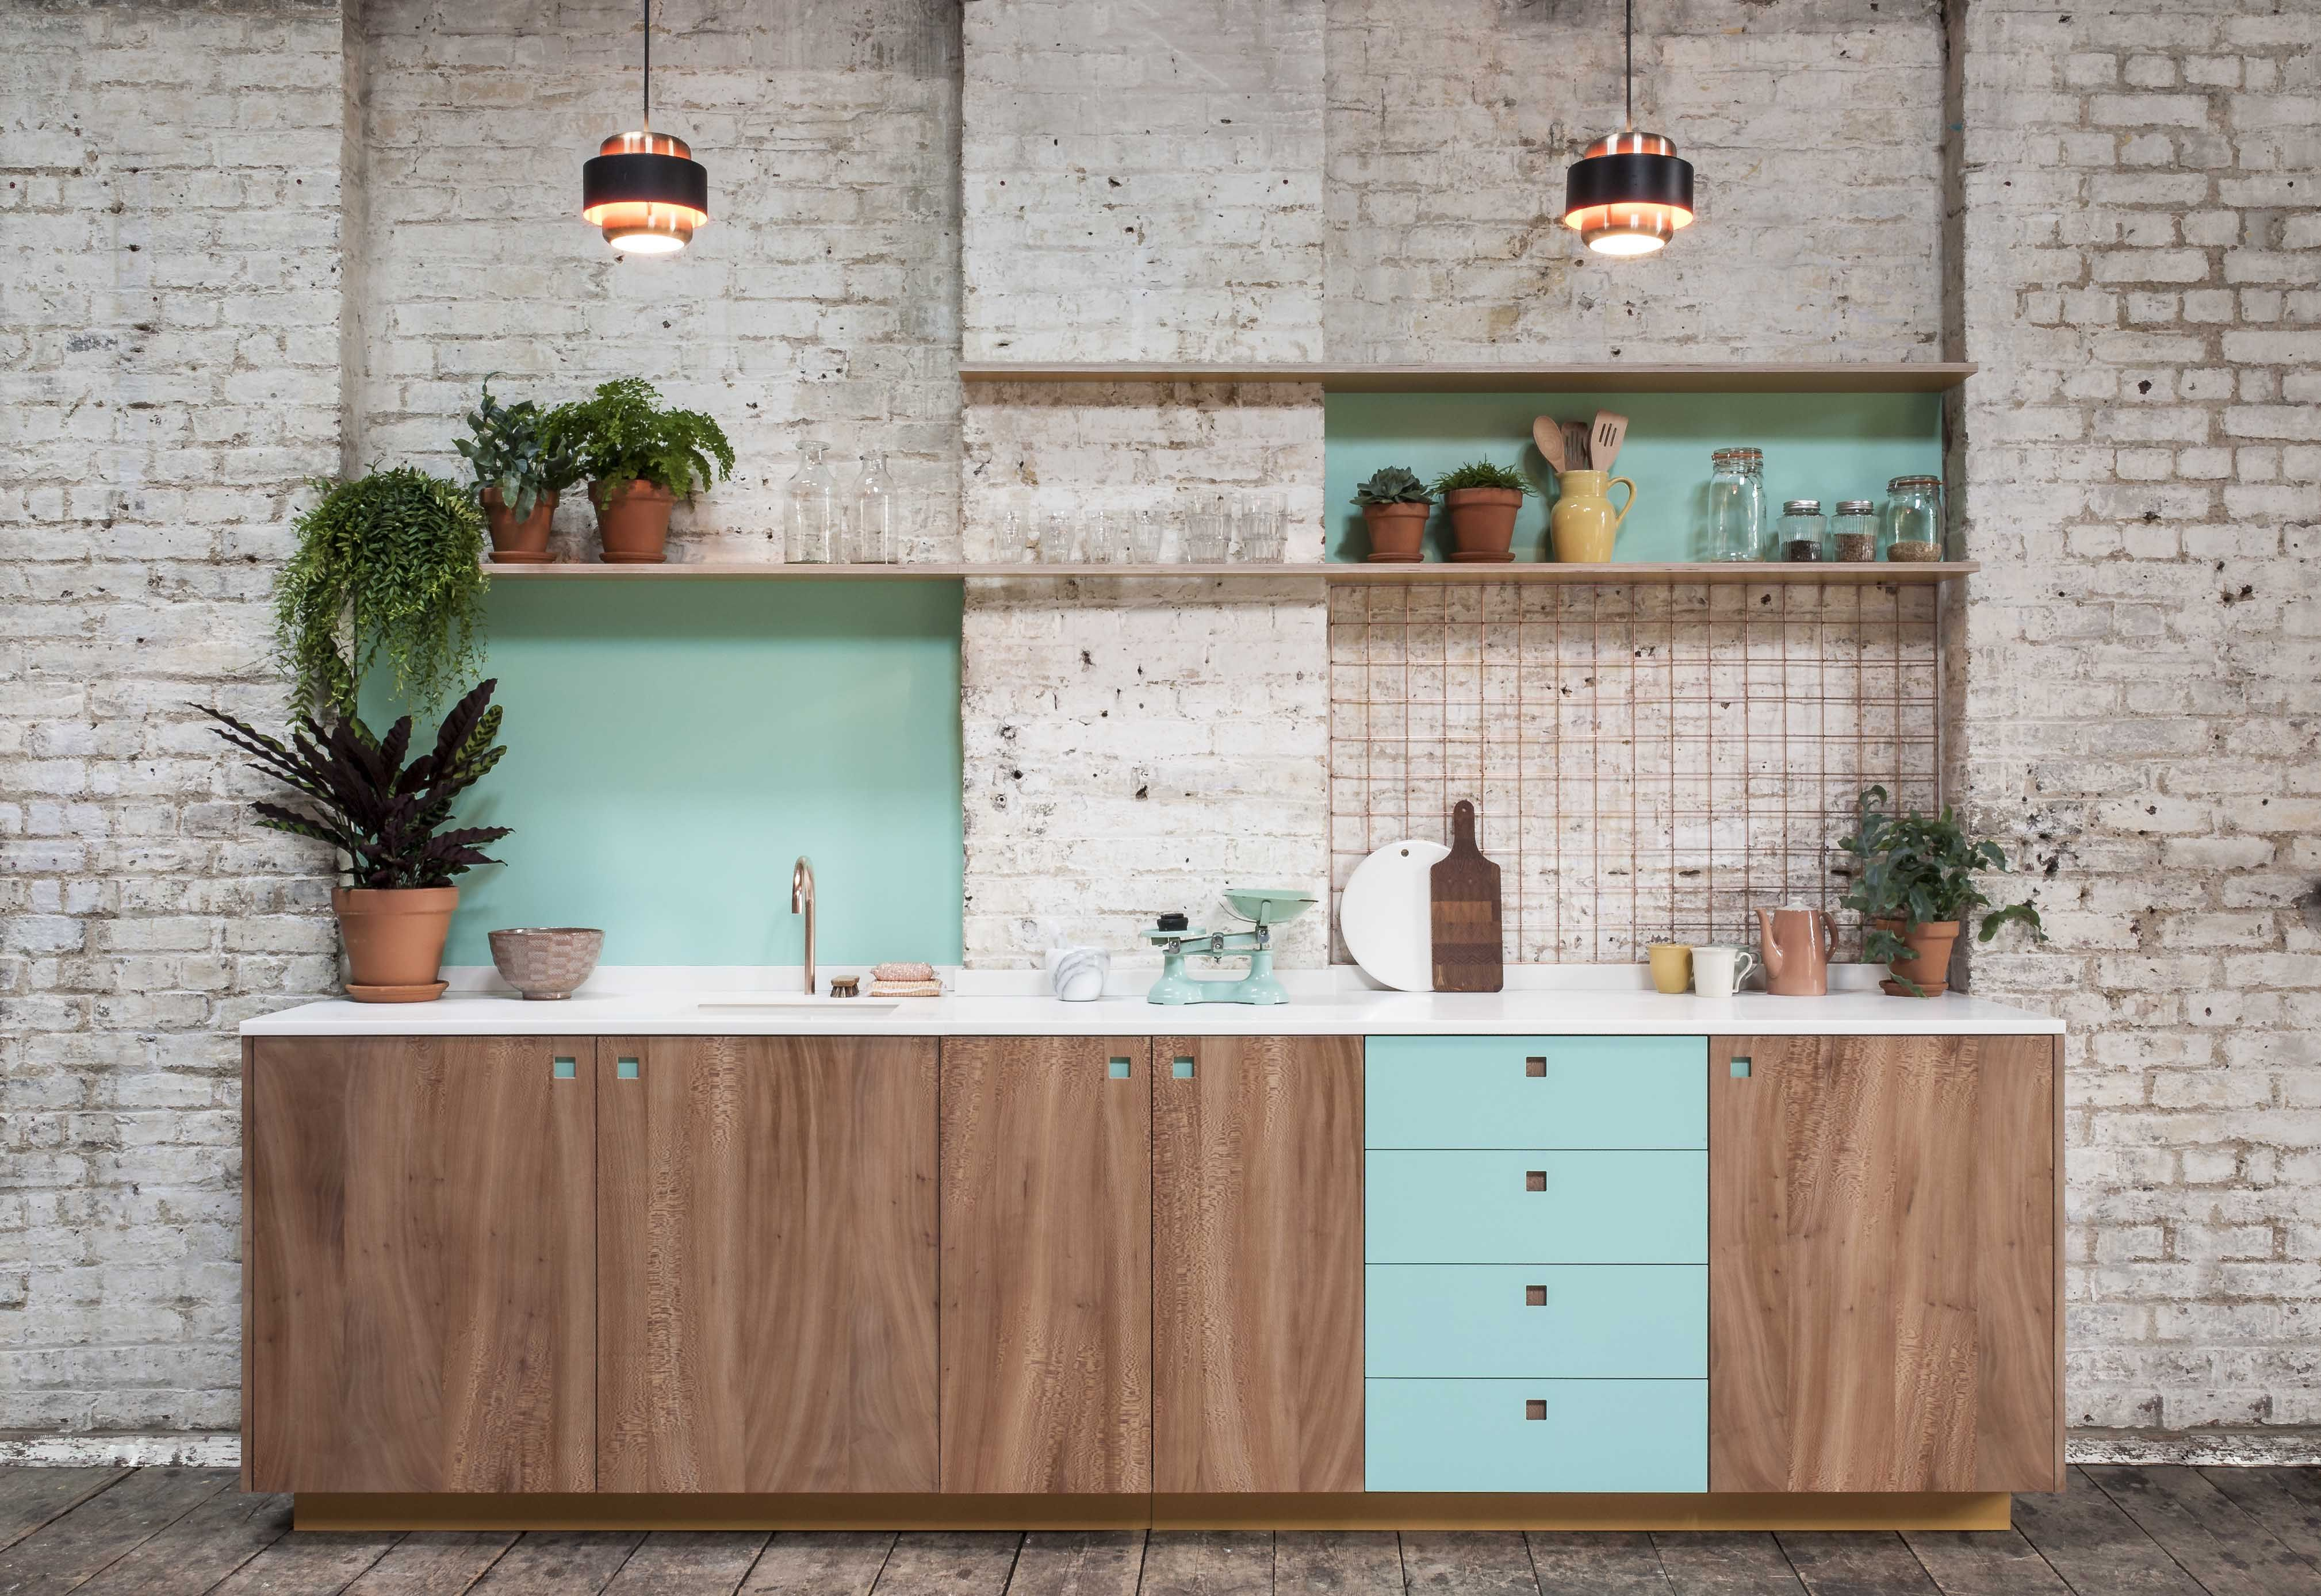 Brixton east london plane lido laminate modernkitchen